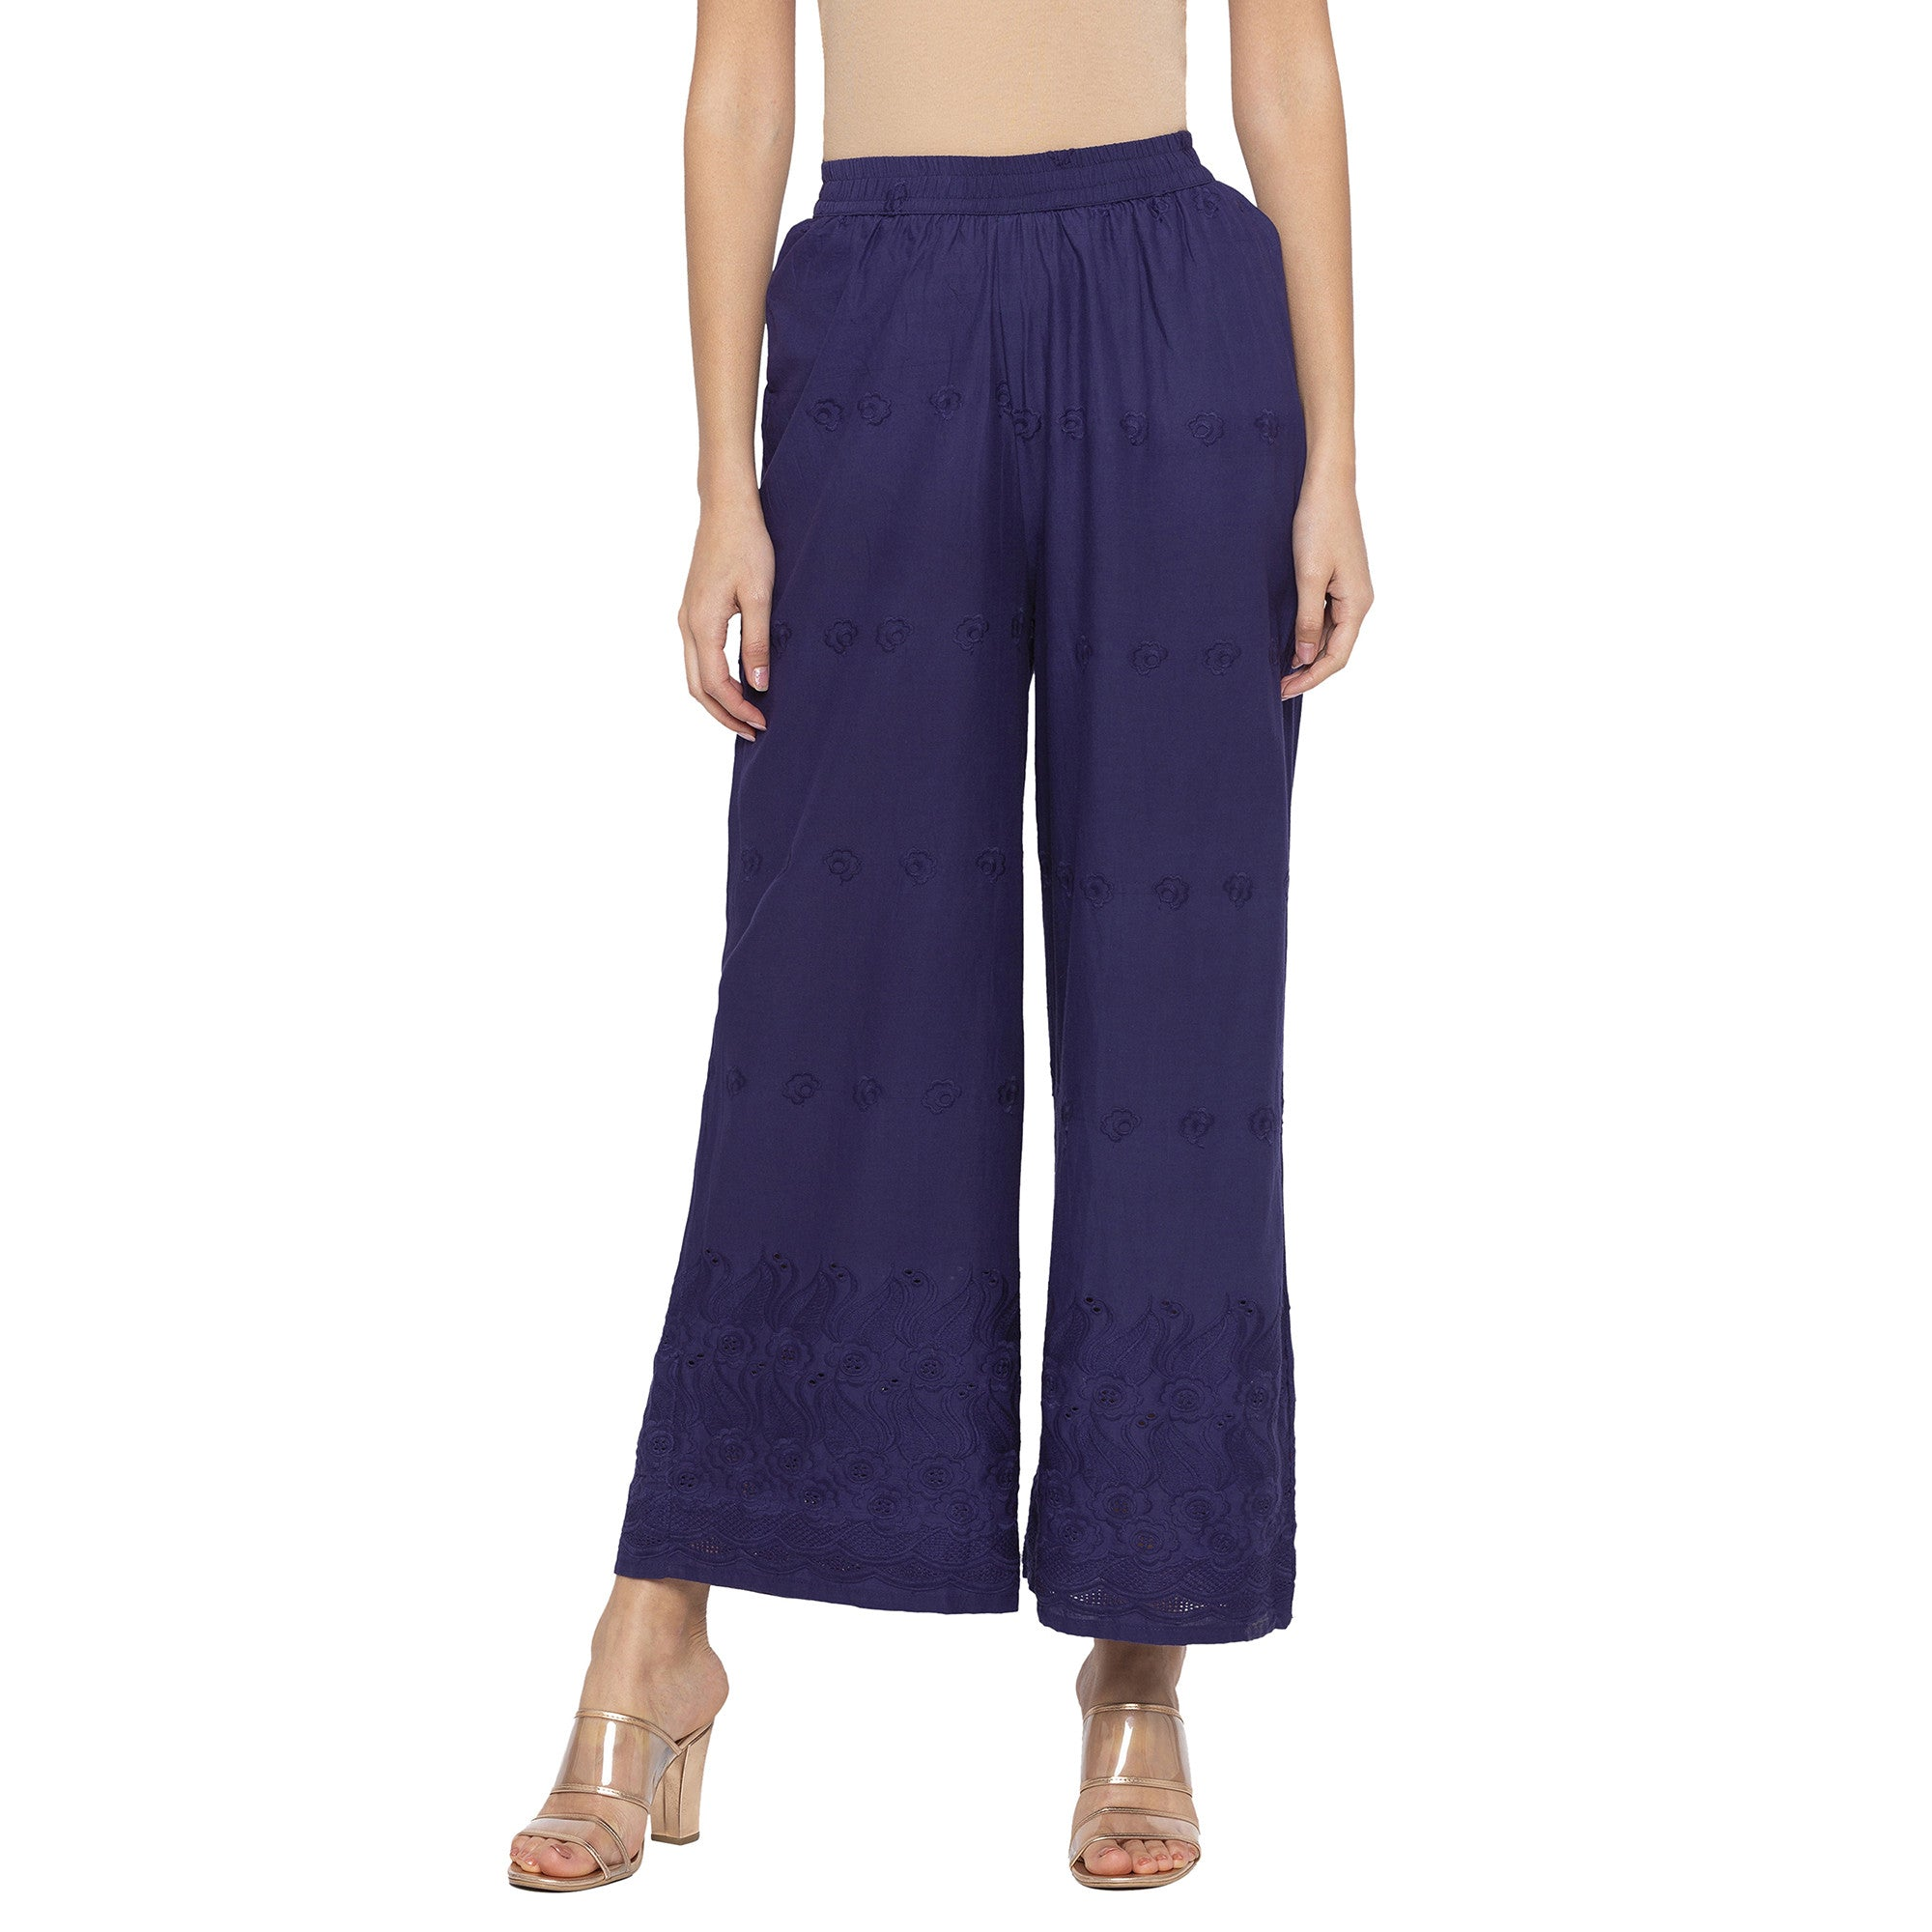 Casual Navy Blue Color Loose Fit Regular Parallel Trousers-1